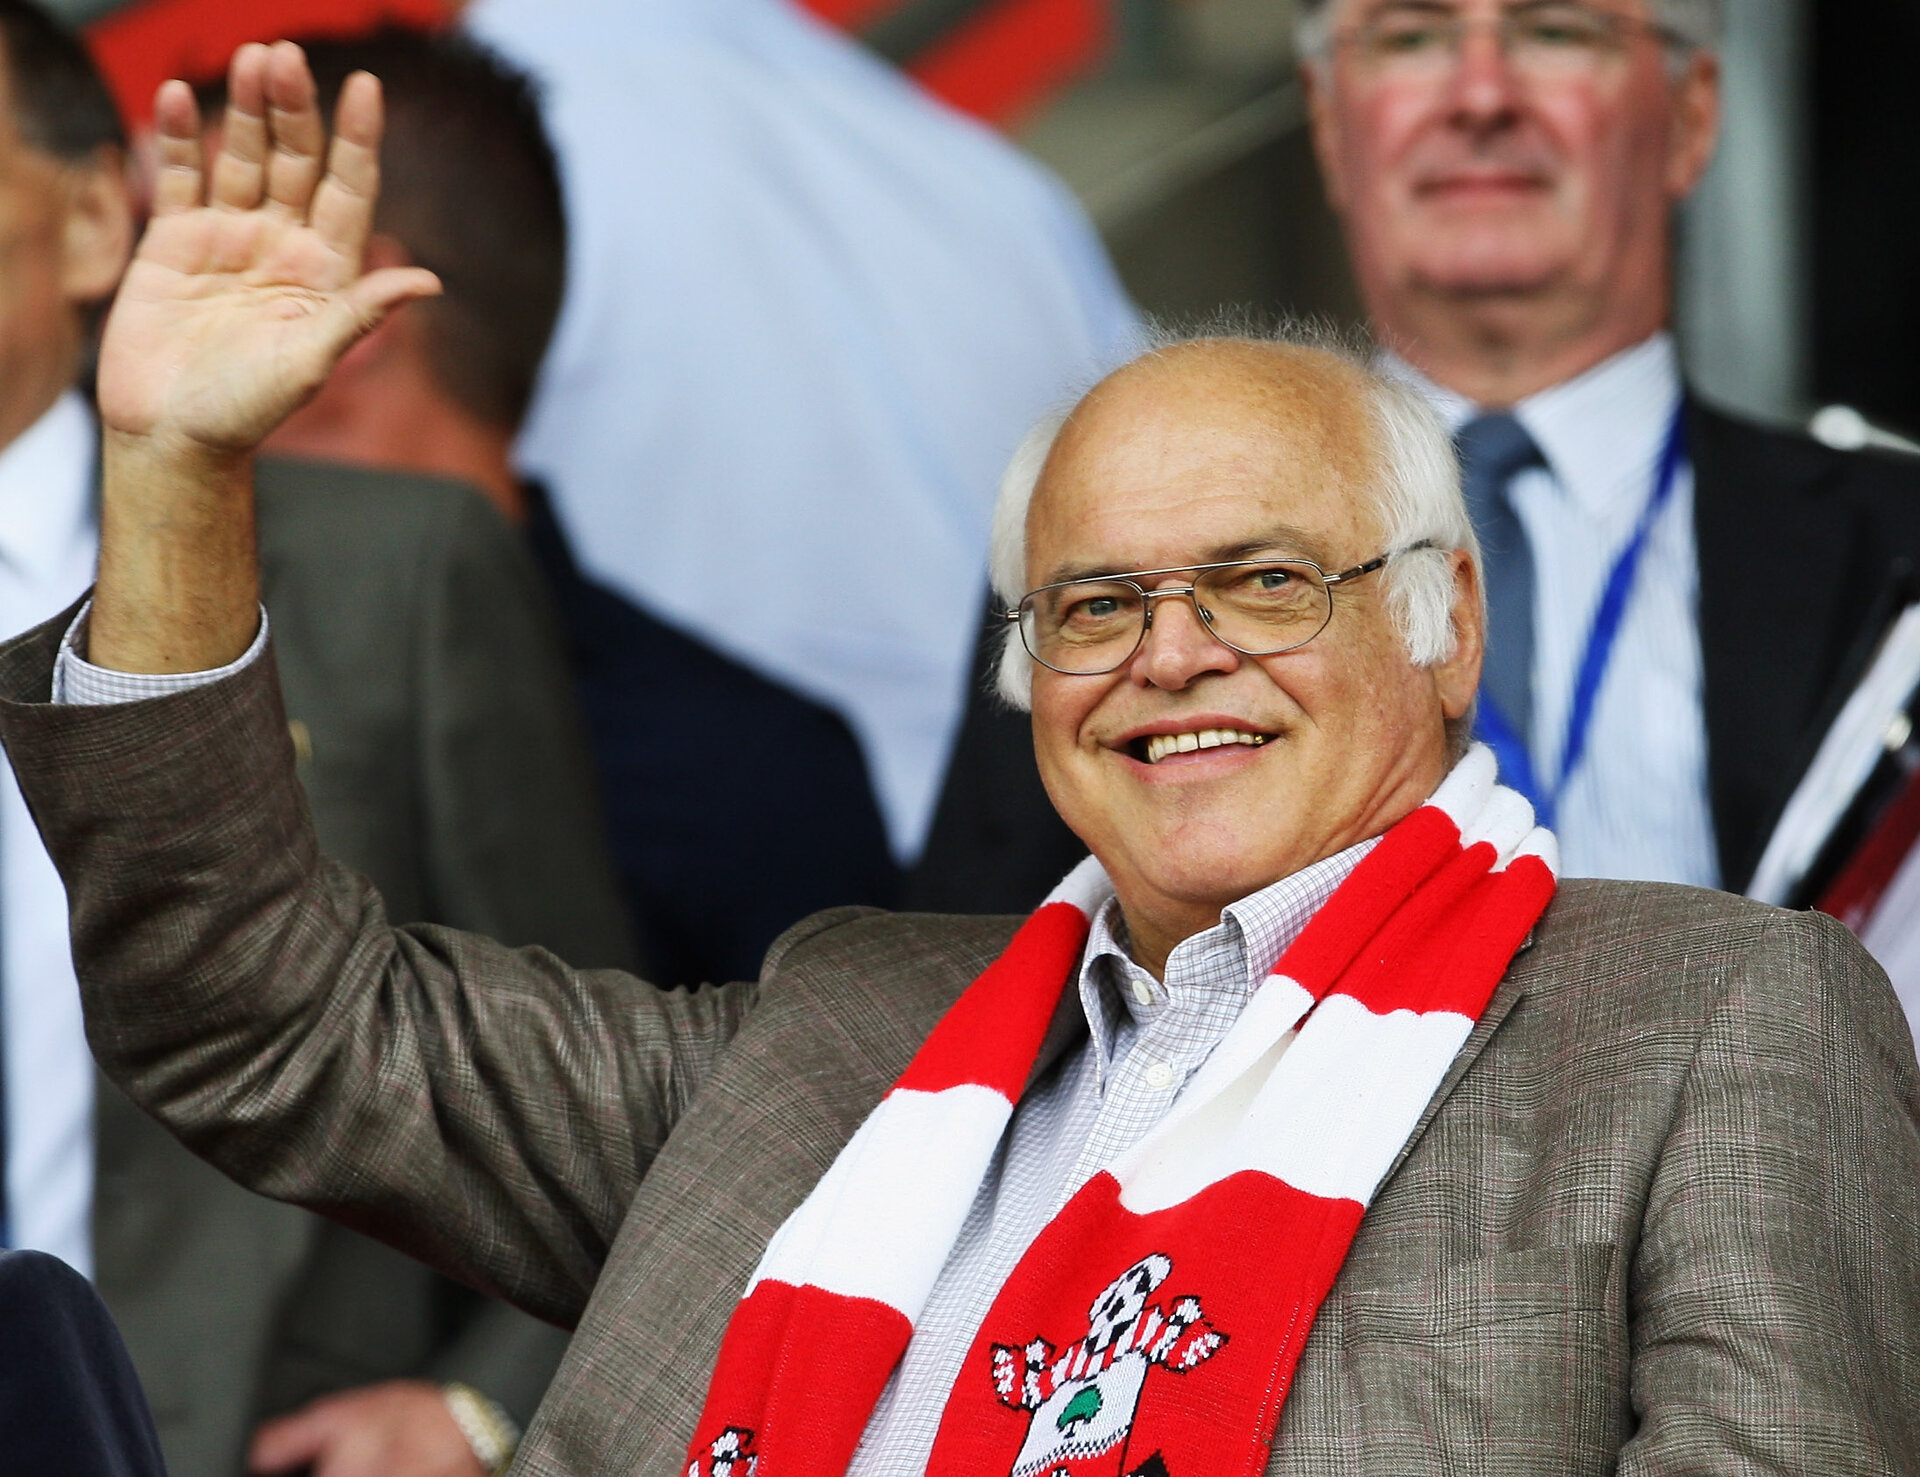 SOUTHAMPTON, ENGLAND - AUGUST 08: New Southampton owner Markus Liebherr waves to the fans prior to the Coca-Cola League One match between Southampton and Millwall at St Mary's on August 8, 2009 in Southampton, England.  (Photo by Bryn Lennon/Getty Images)